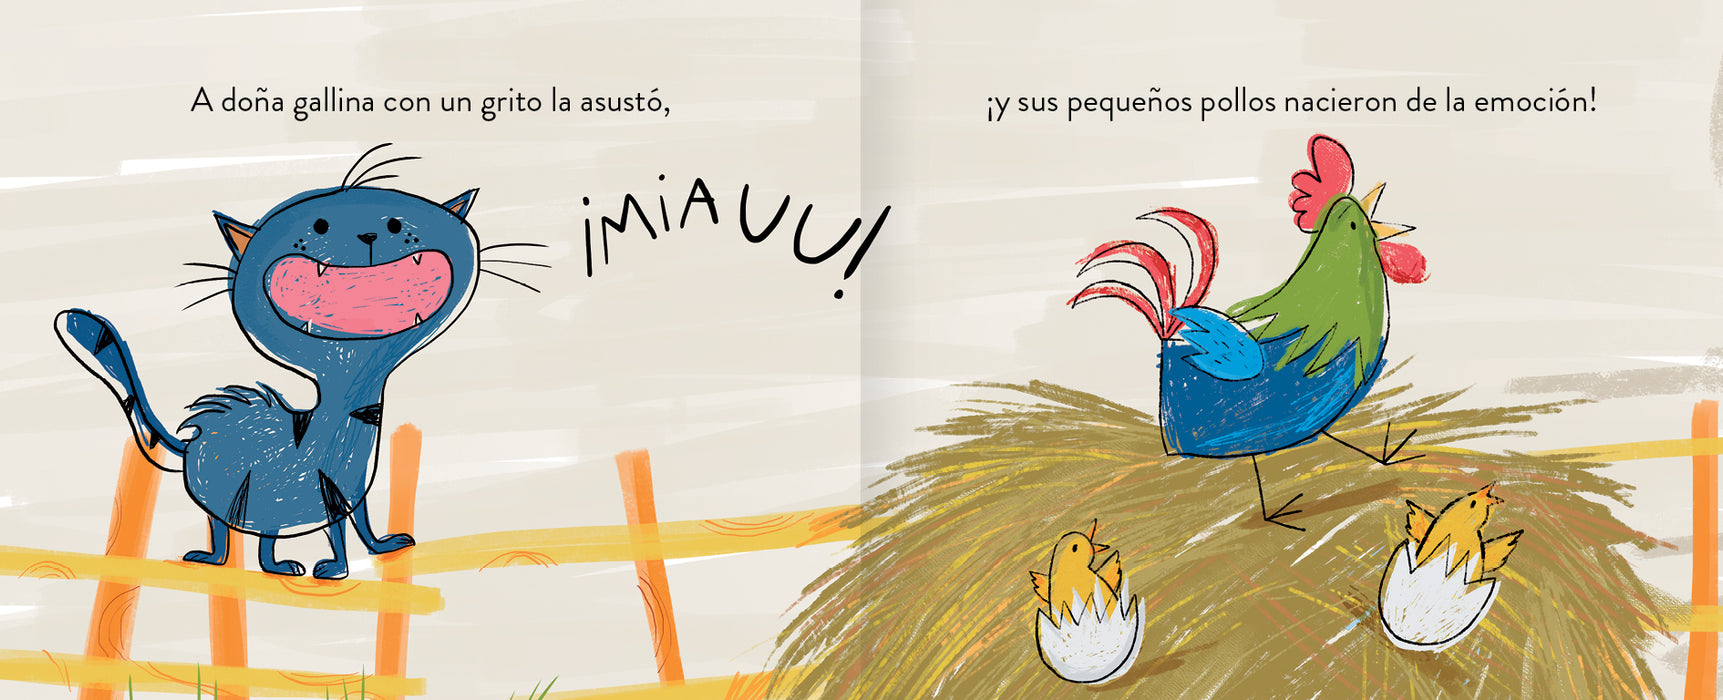 inside pages shows a blue cat and chickens